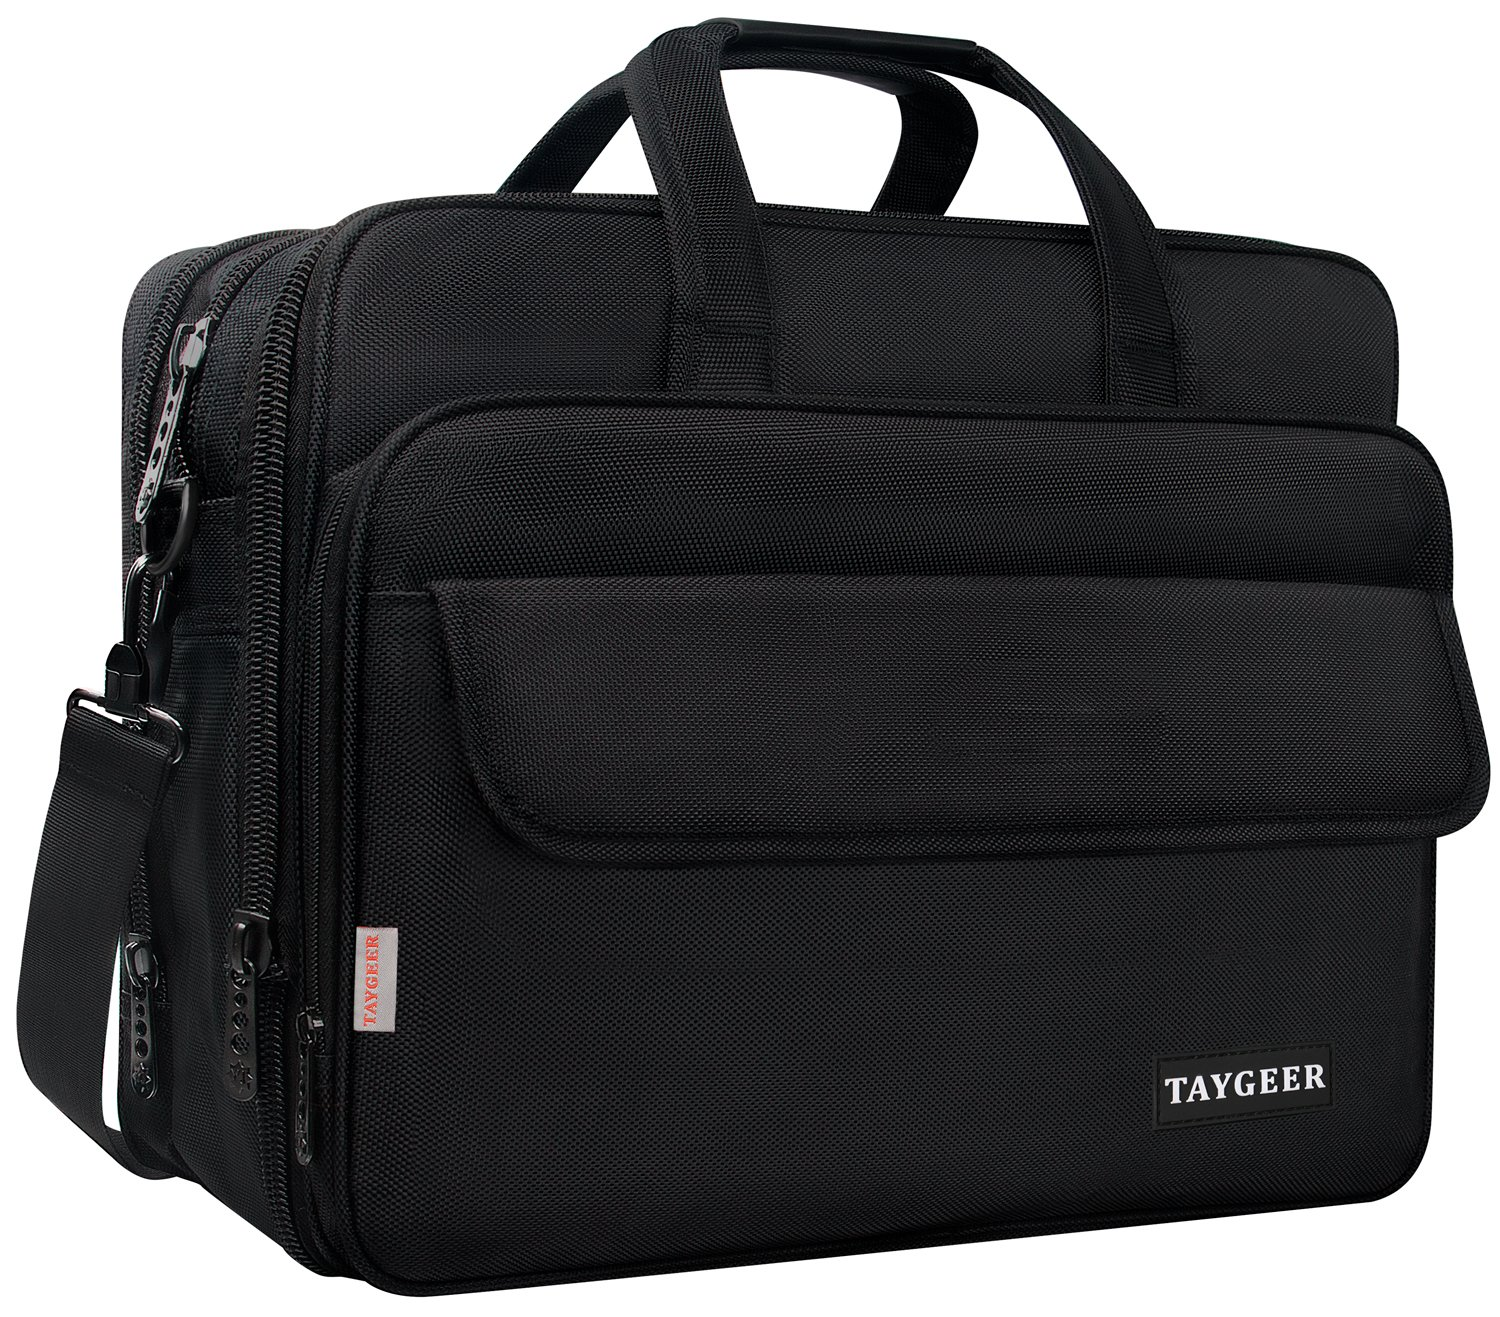 Taygeer 17.3 Inch Laptop Bag, Expandable Multi-functional Business Briefcase for Men Women, Water Resitant Shoulder Computer Messenger Bag,Carry On Handle Travel Case for 17'' Asus Acer Dell HP, Black